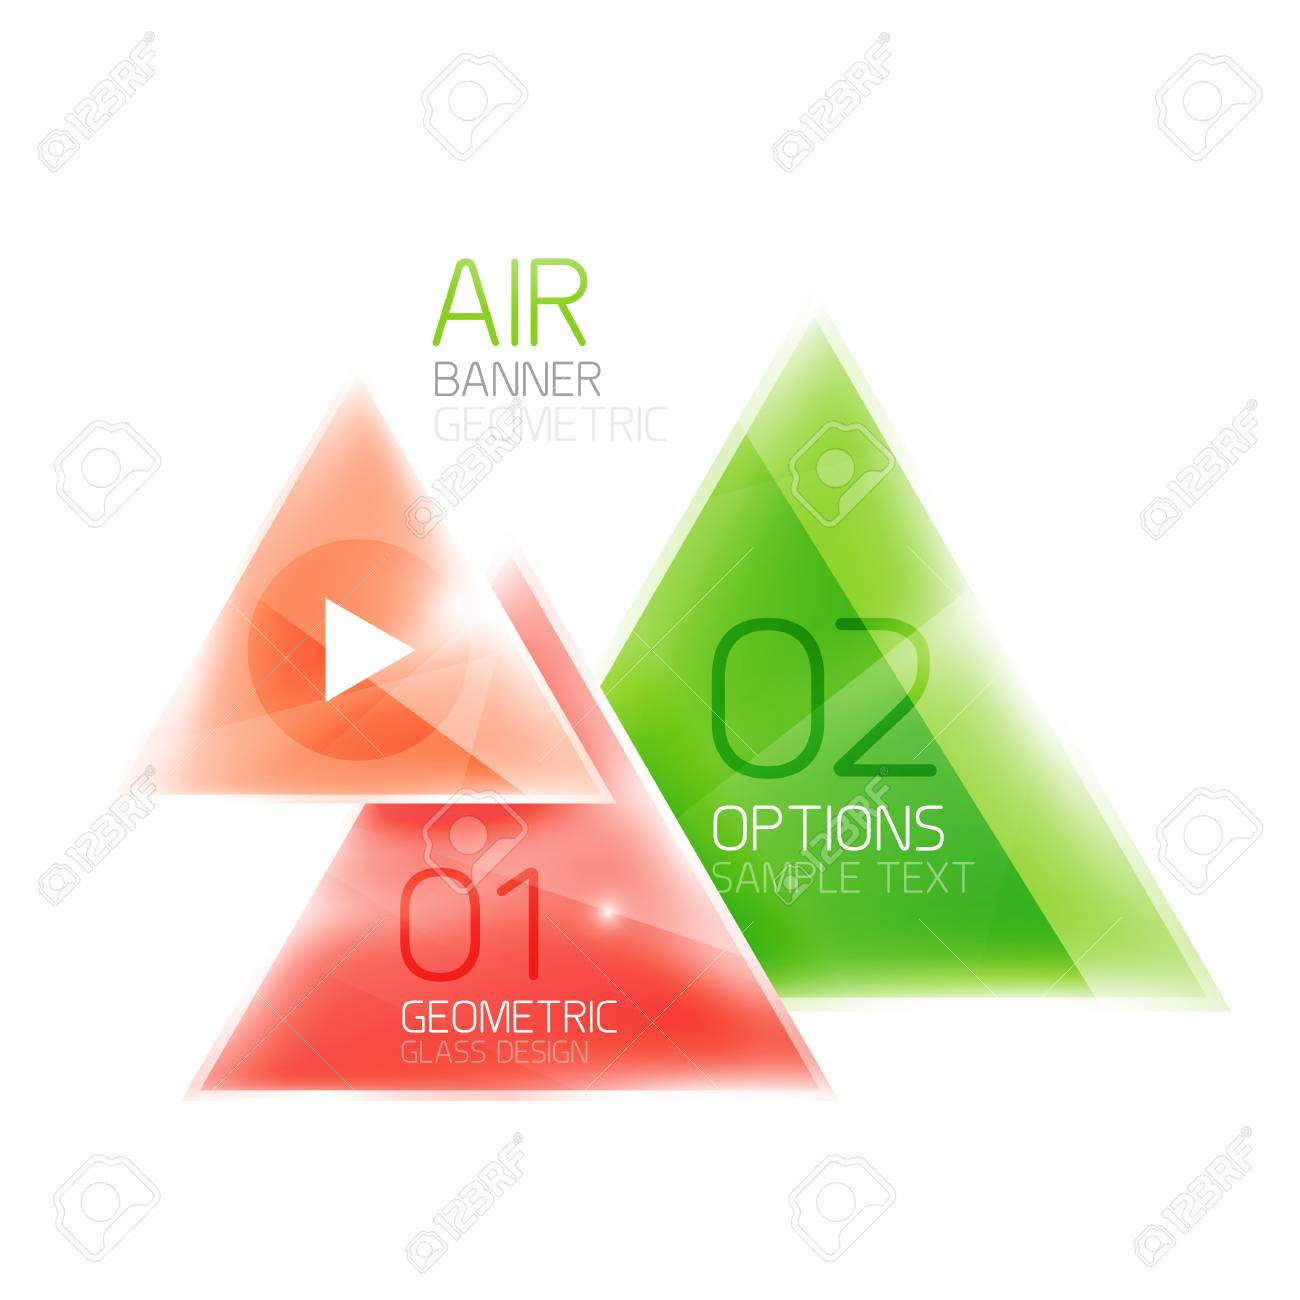 air triangle abstract background 3d geometric vector template